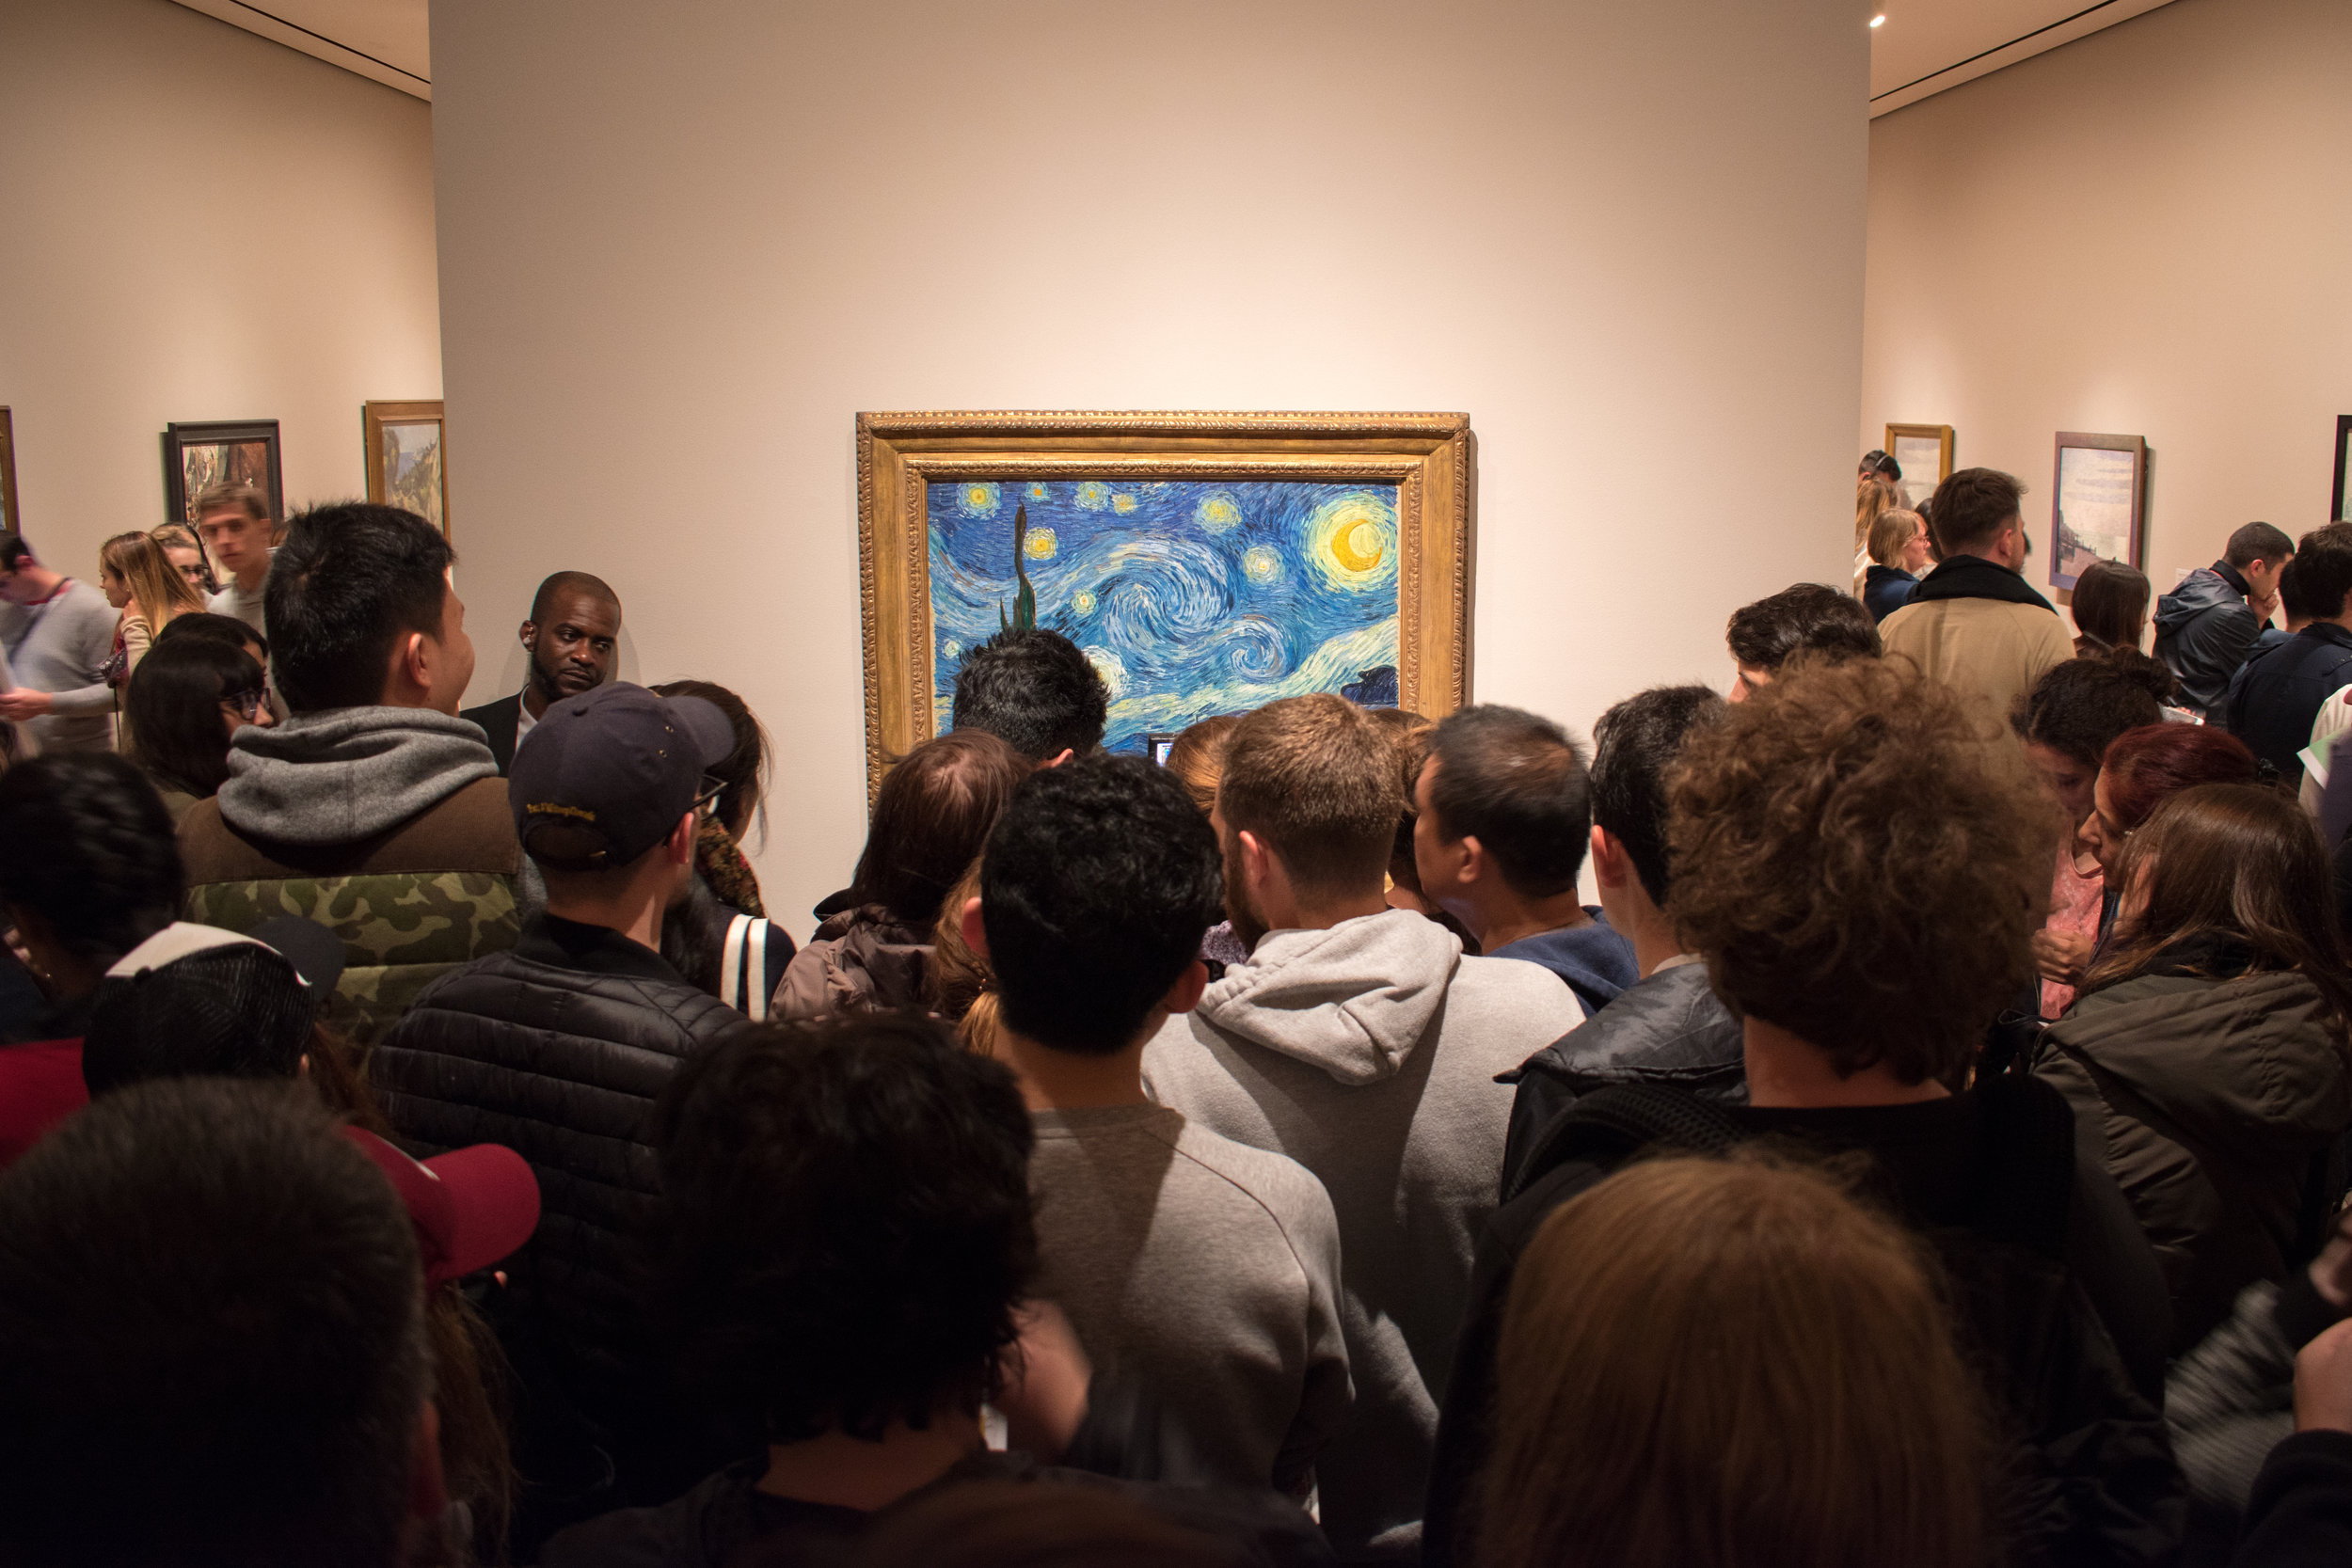 Hoards Gather To Glimpse Van Gogh's Starry Night in the MoMA